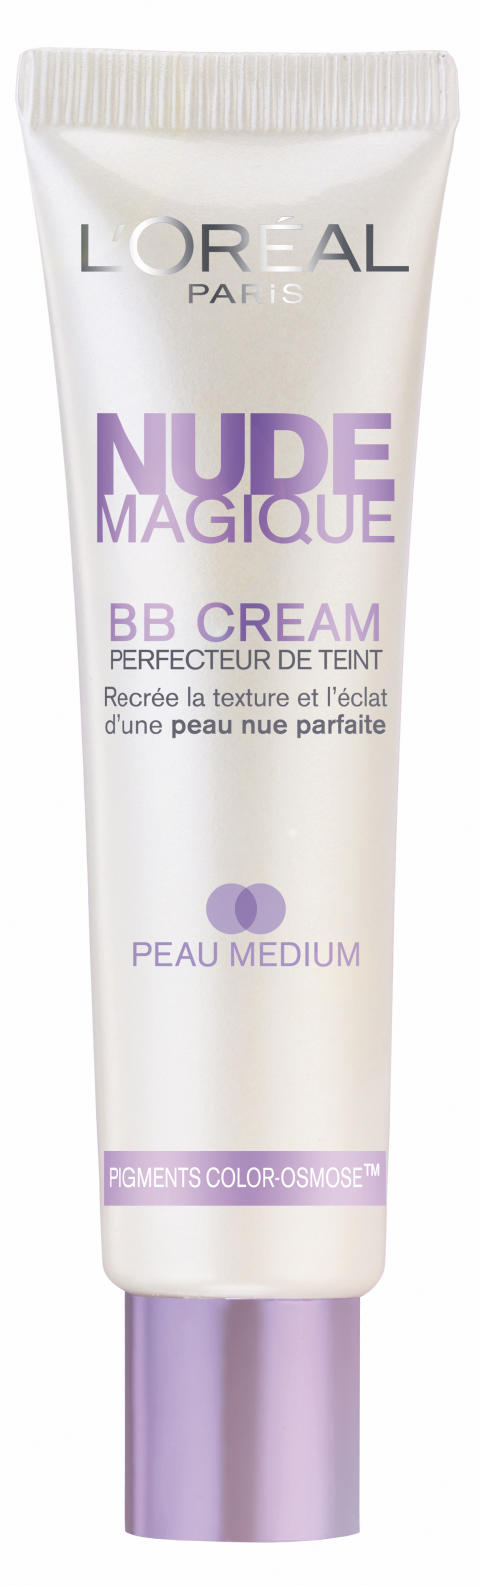 Nude Magique BB Cream & BB Powder